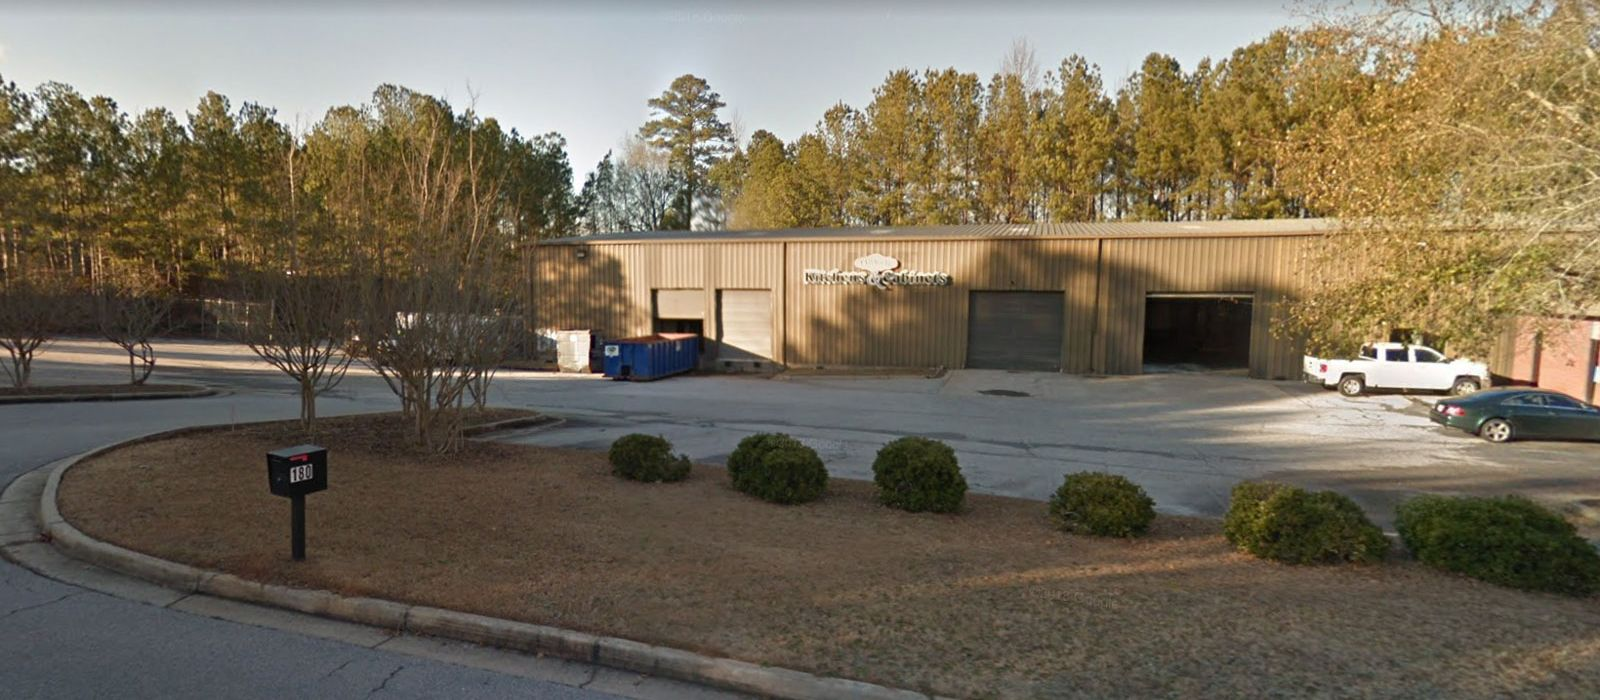 Fayetteville Location Image